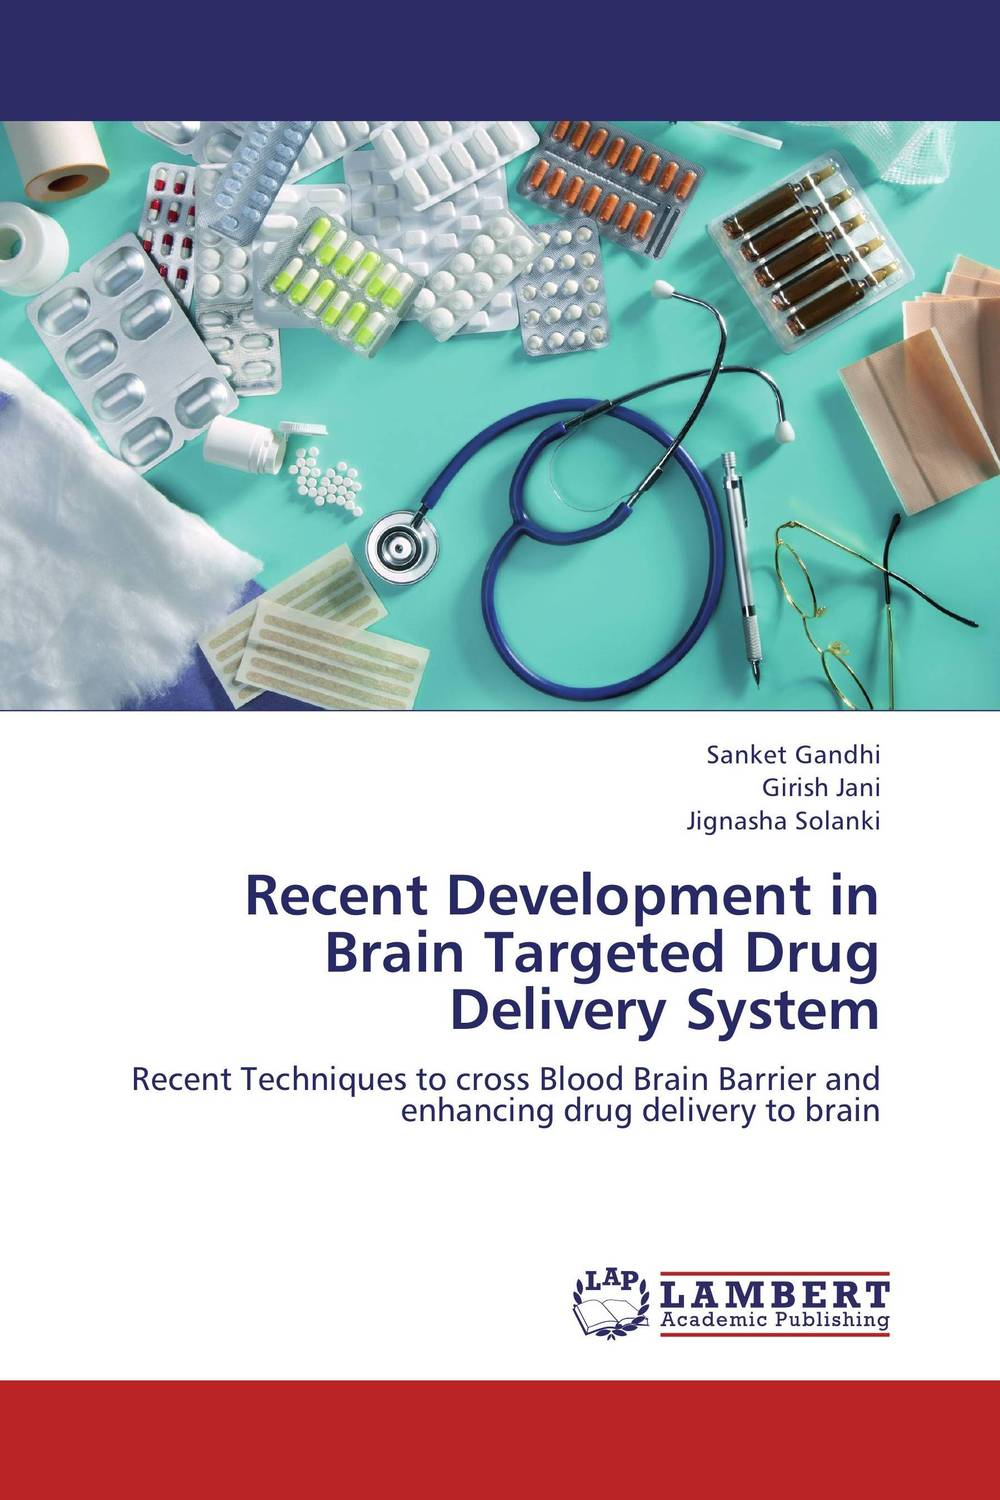 Recent Development in Brain Targeted Drug Delivery System abhishek kumar sah sunil k jain and manmohan singh jangdey a recent approaches in topical drug delivery system